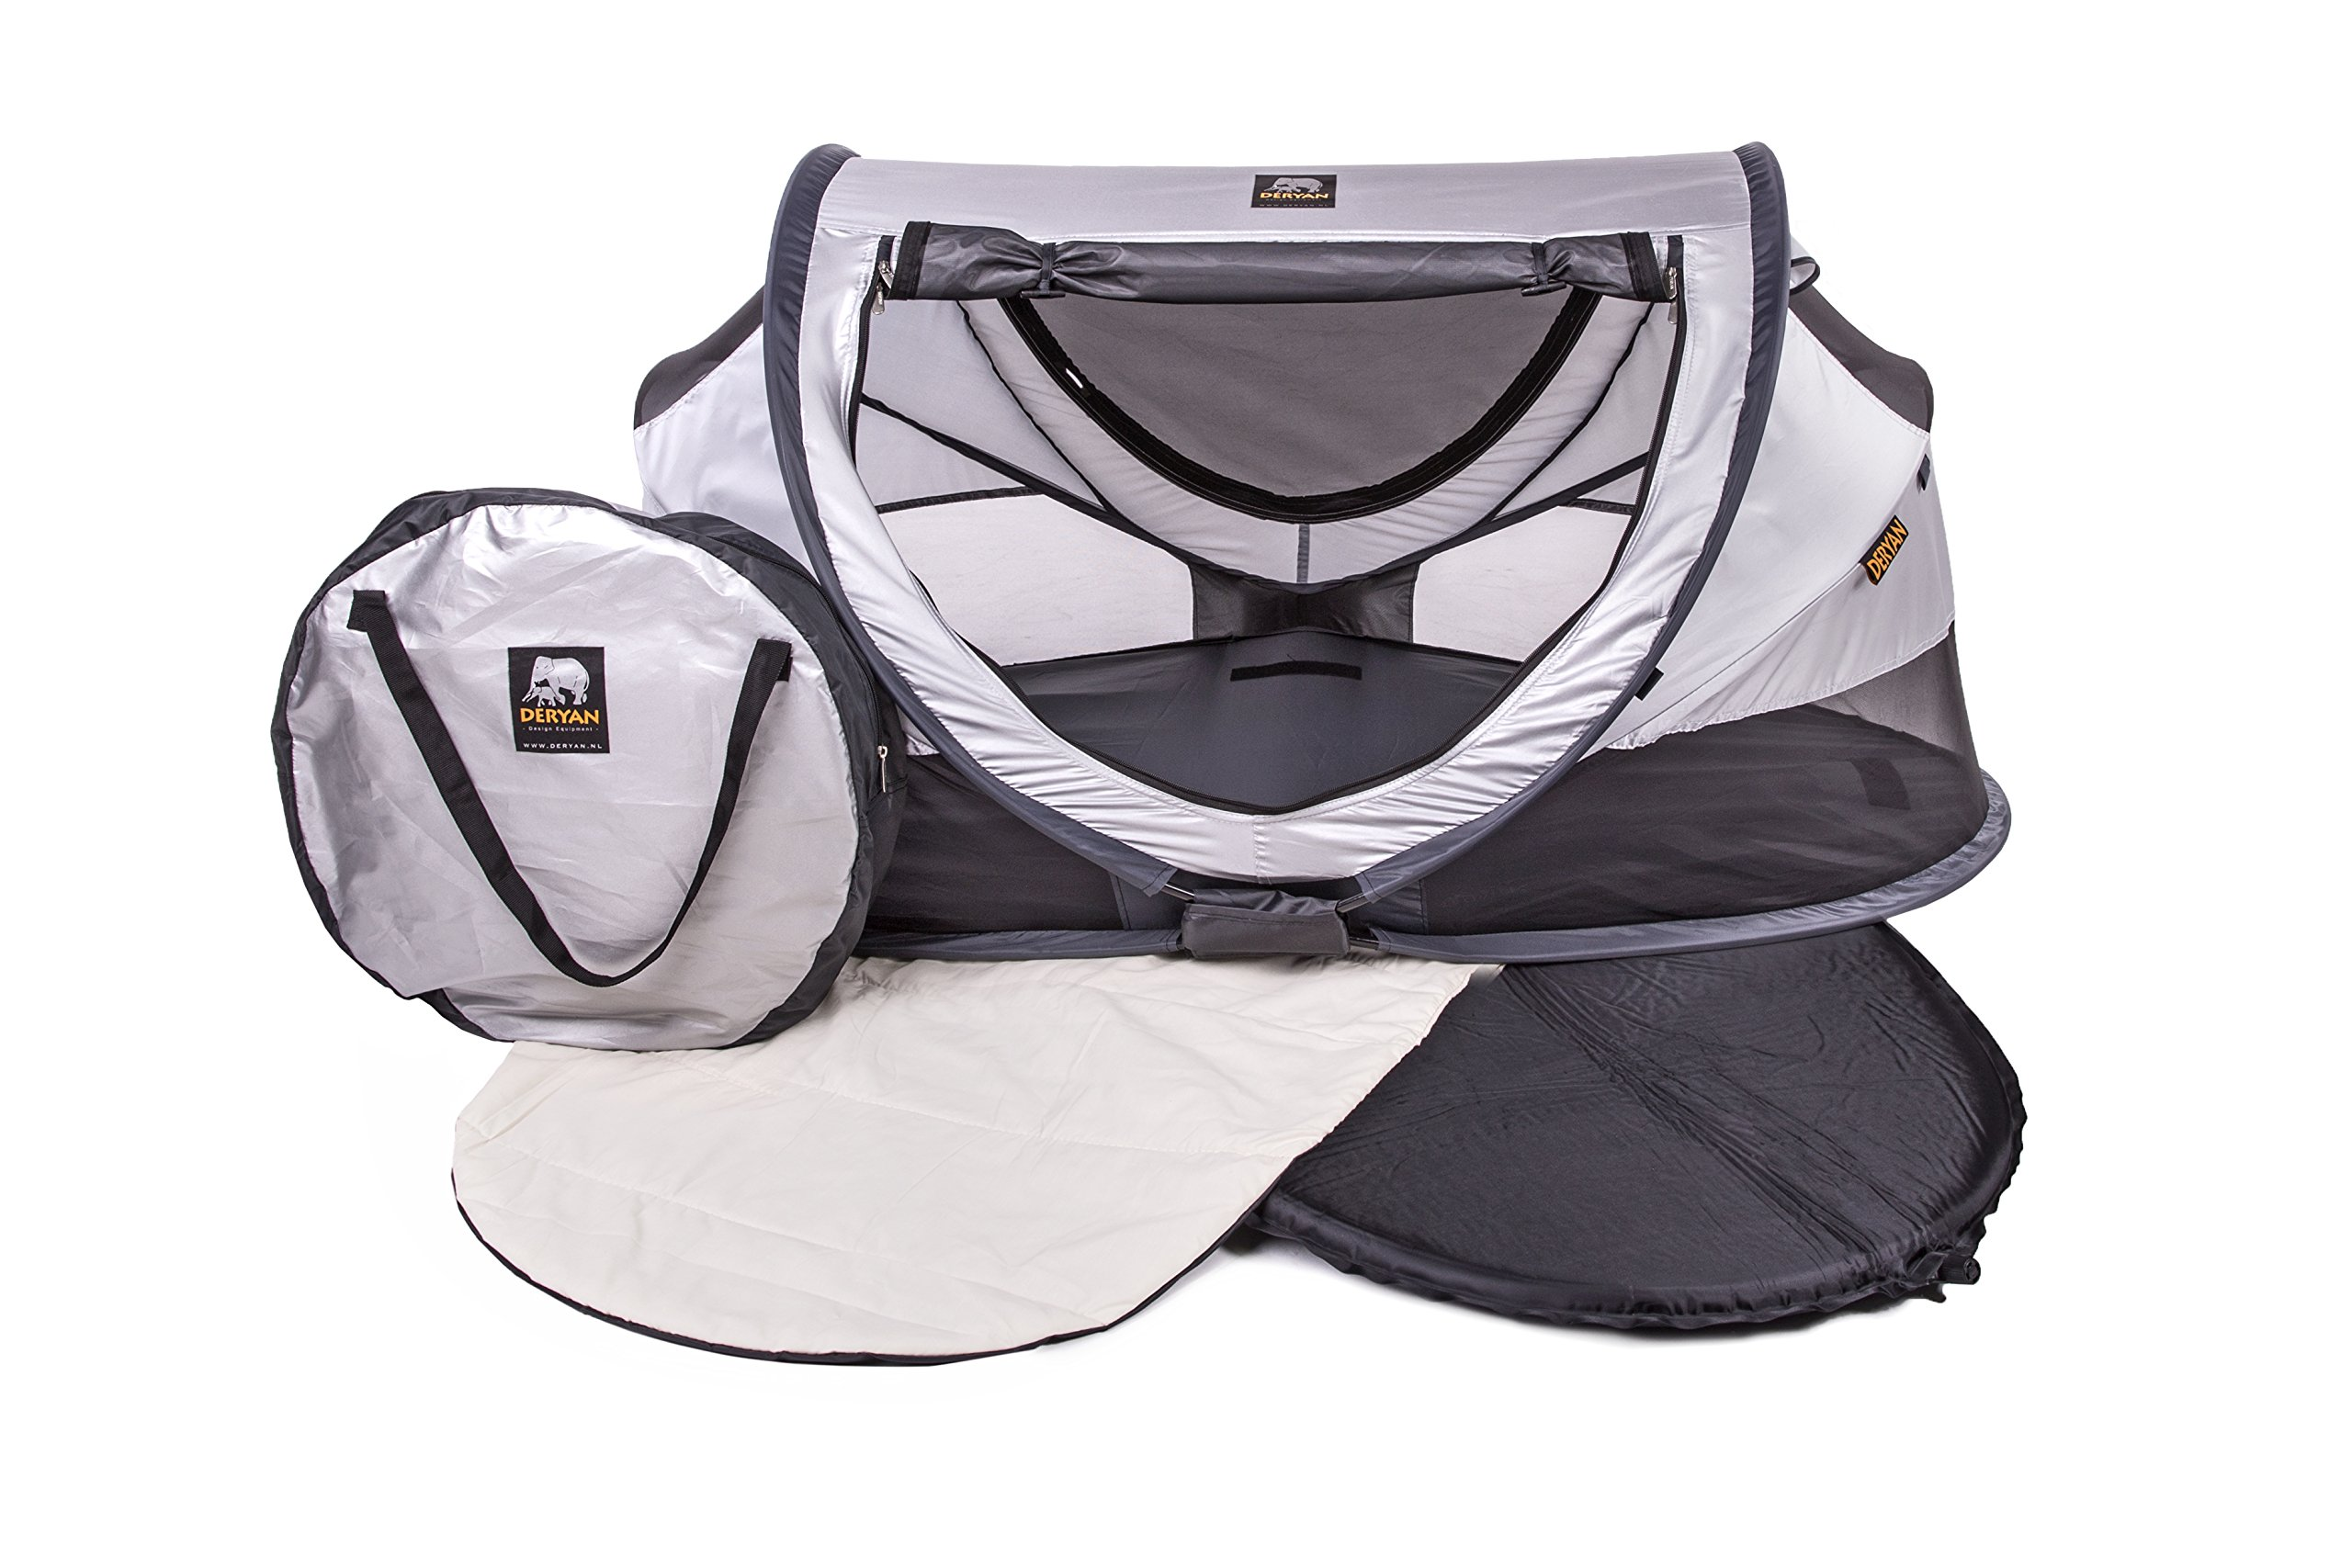 Travel Cot Peuter Luxe (Silver) Deryan 50% UV Protection and flame retardant fabric Setup in 2 seconds and a anti-musquito net  5